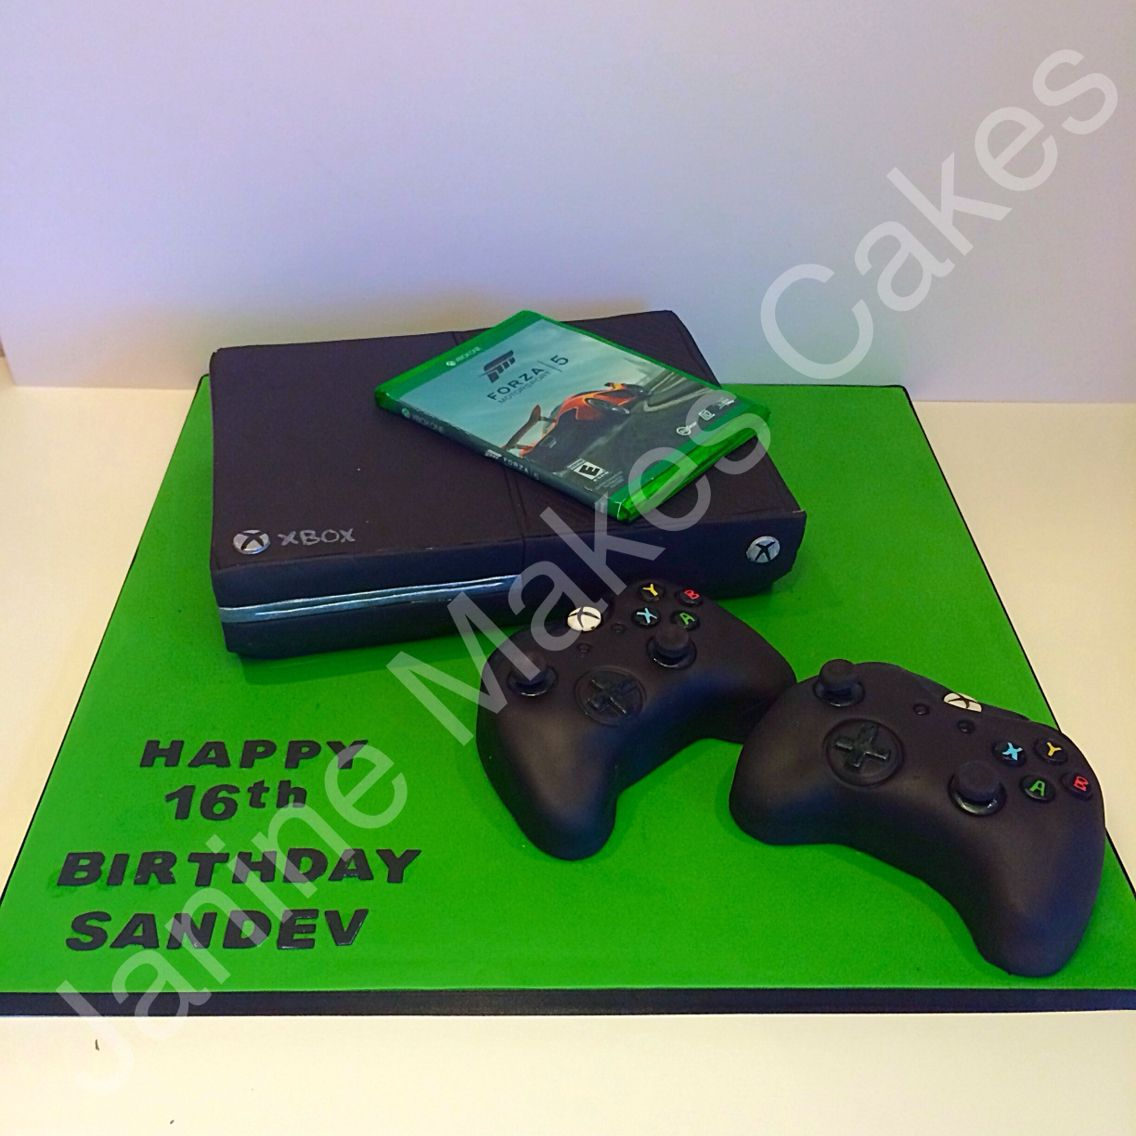 Xbox One, Cakes And Xbox